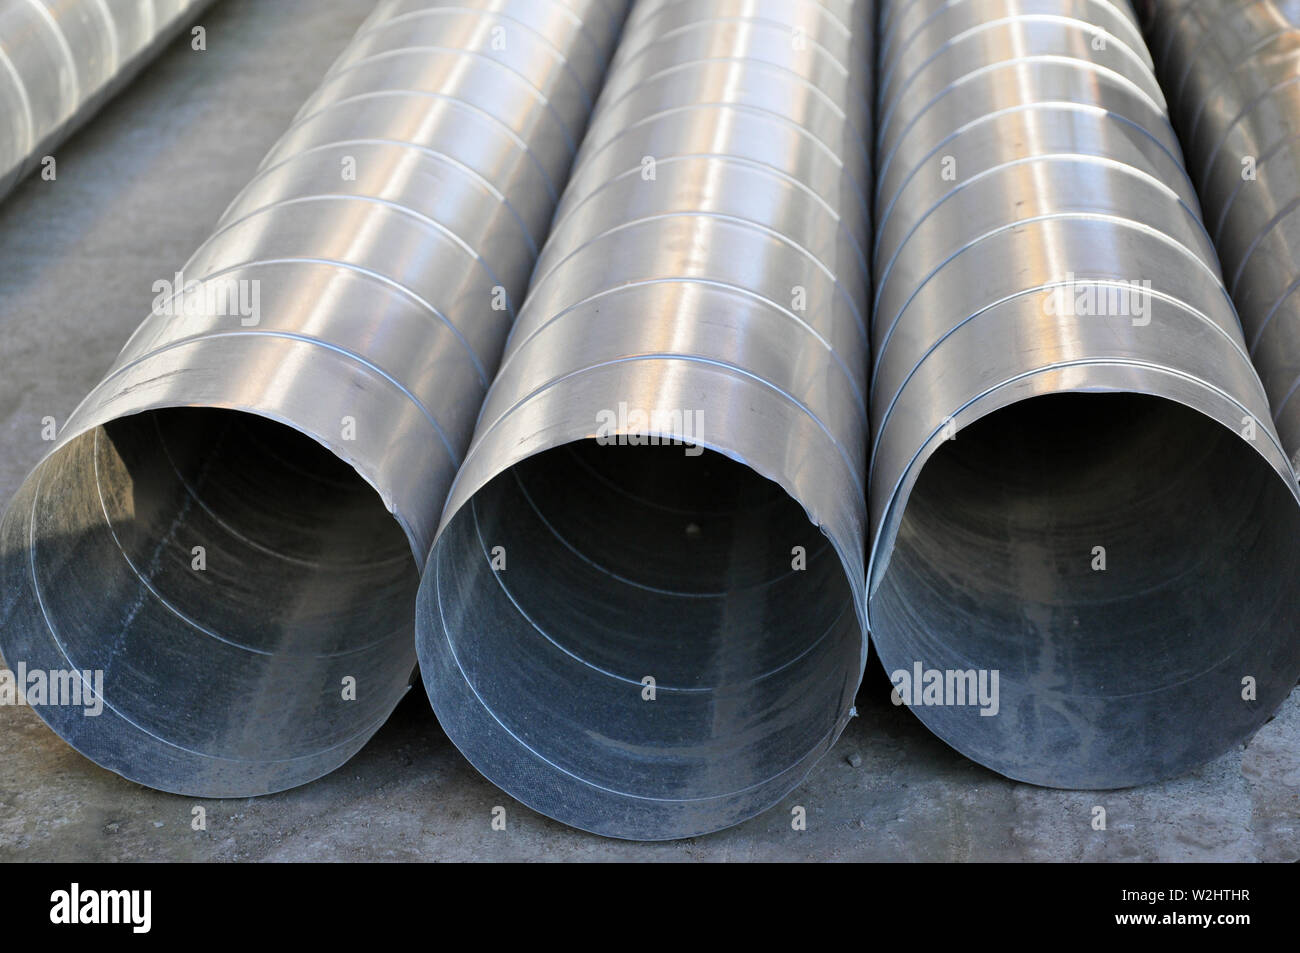 Elements and parts made of galvanized sheet for various ventilation systems, Russia - Stock Image